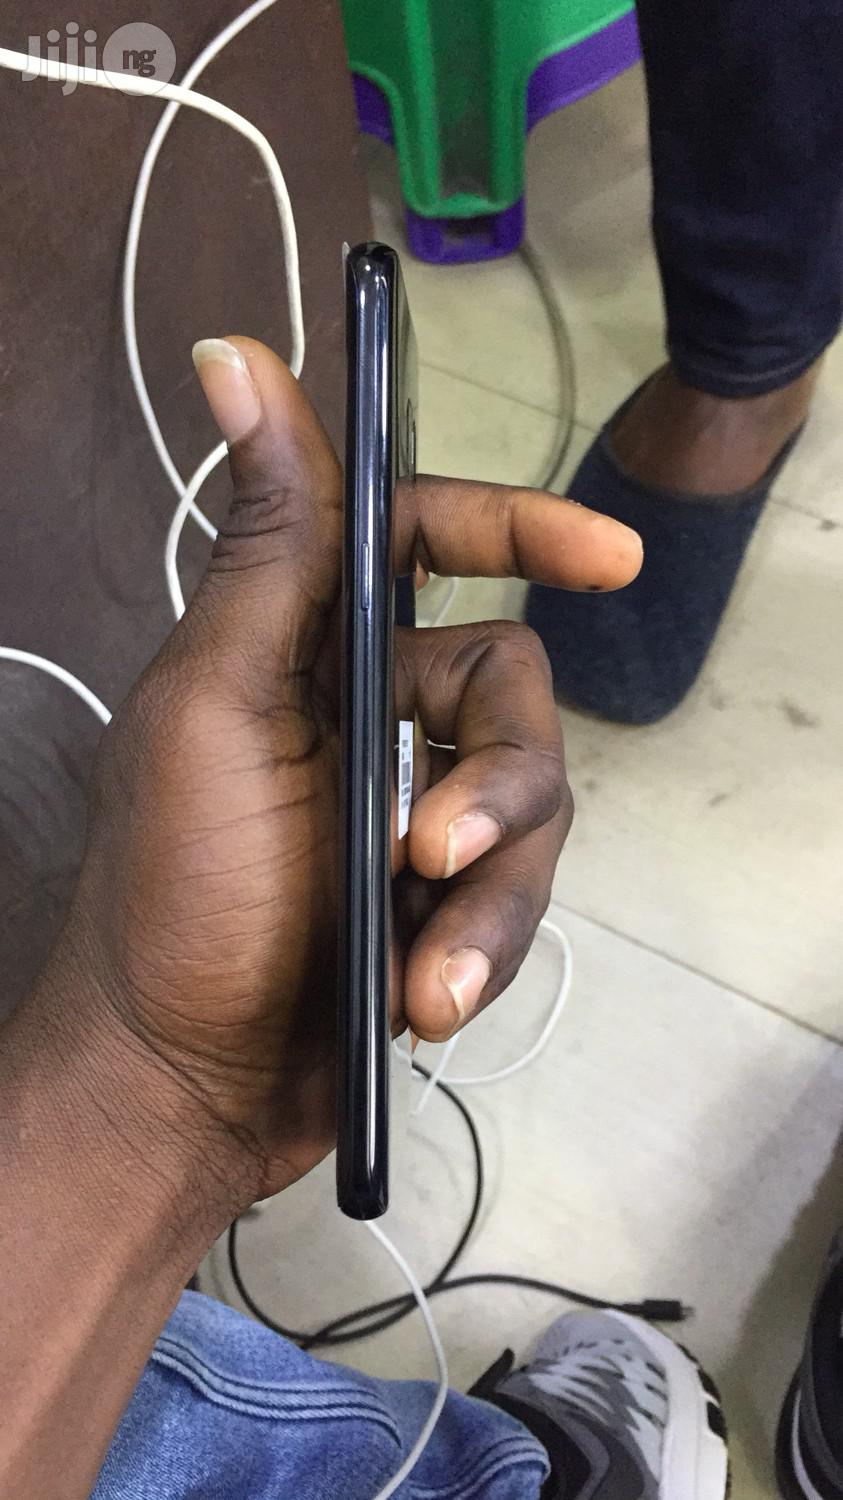 Samsung Galaxy S8 Edge Black 64GB | Mobile Phones for sale in Ikeja, Lagos State, Nigeria